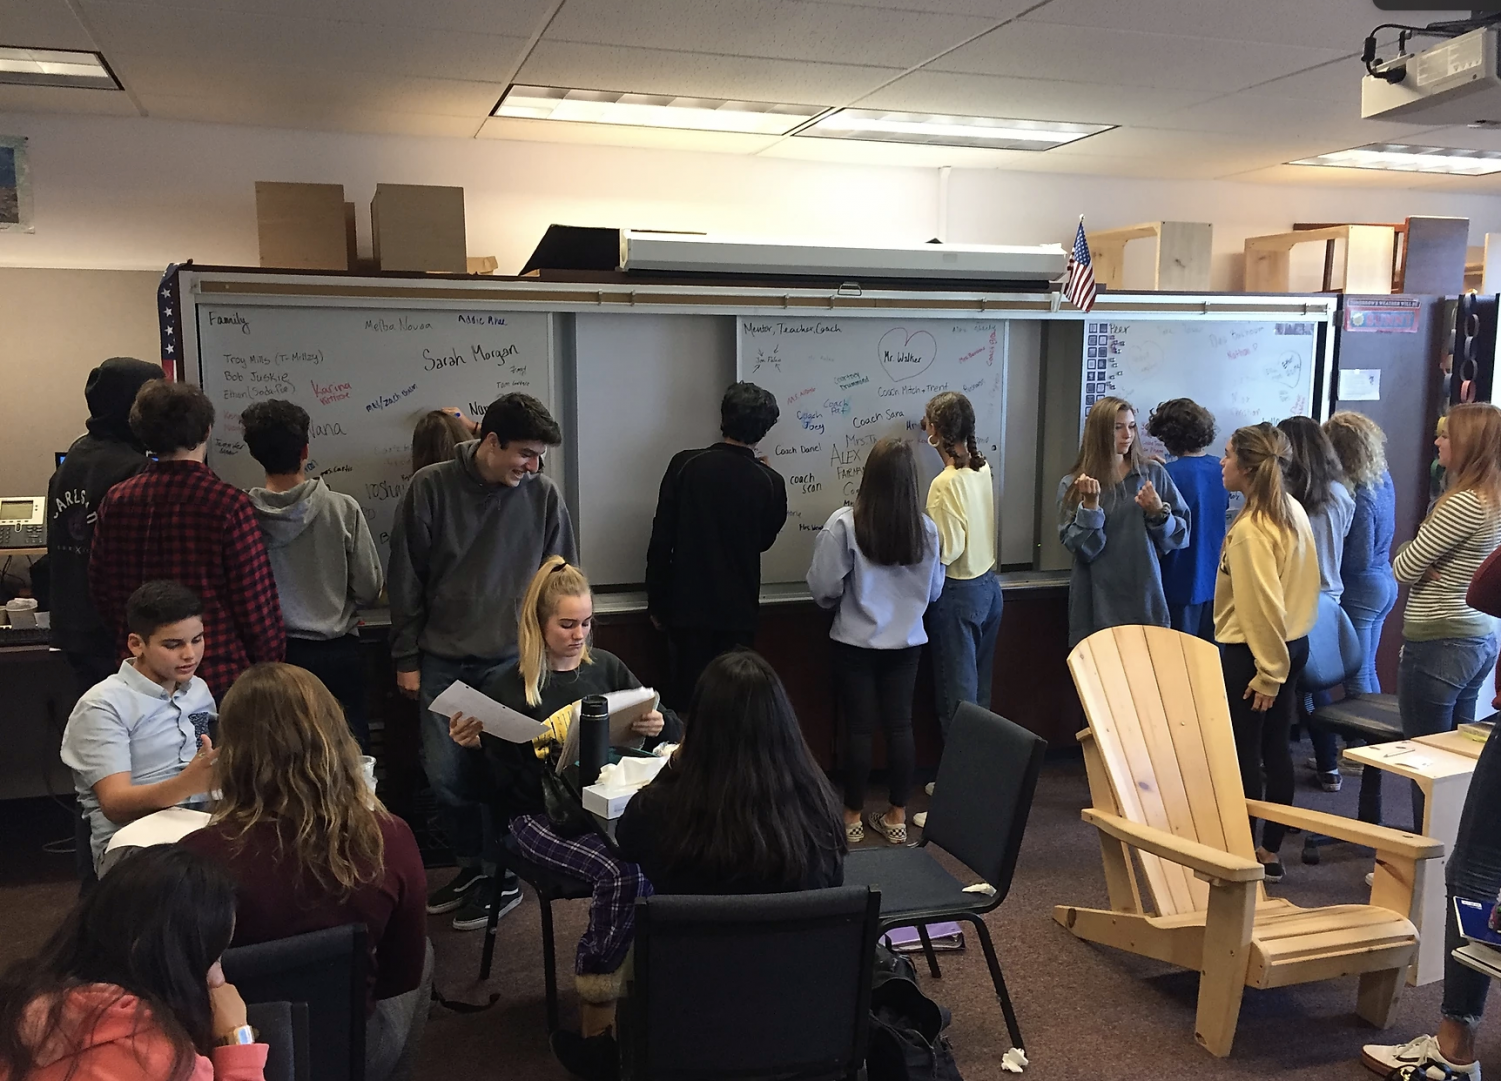 Thompson's students find and discuss thematic ideas in their books during an interactive class discussion.